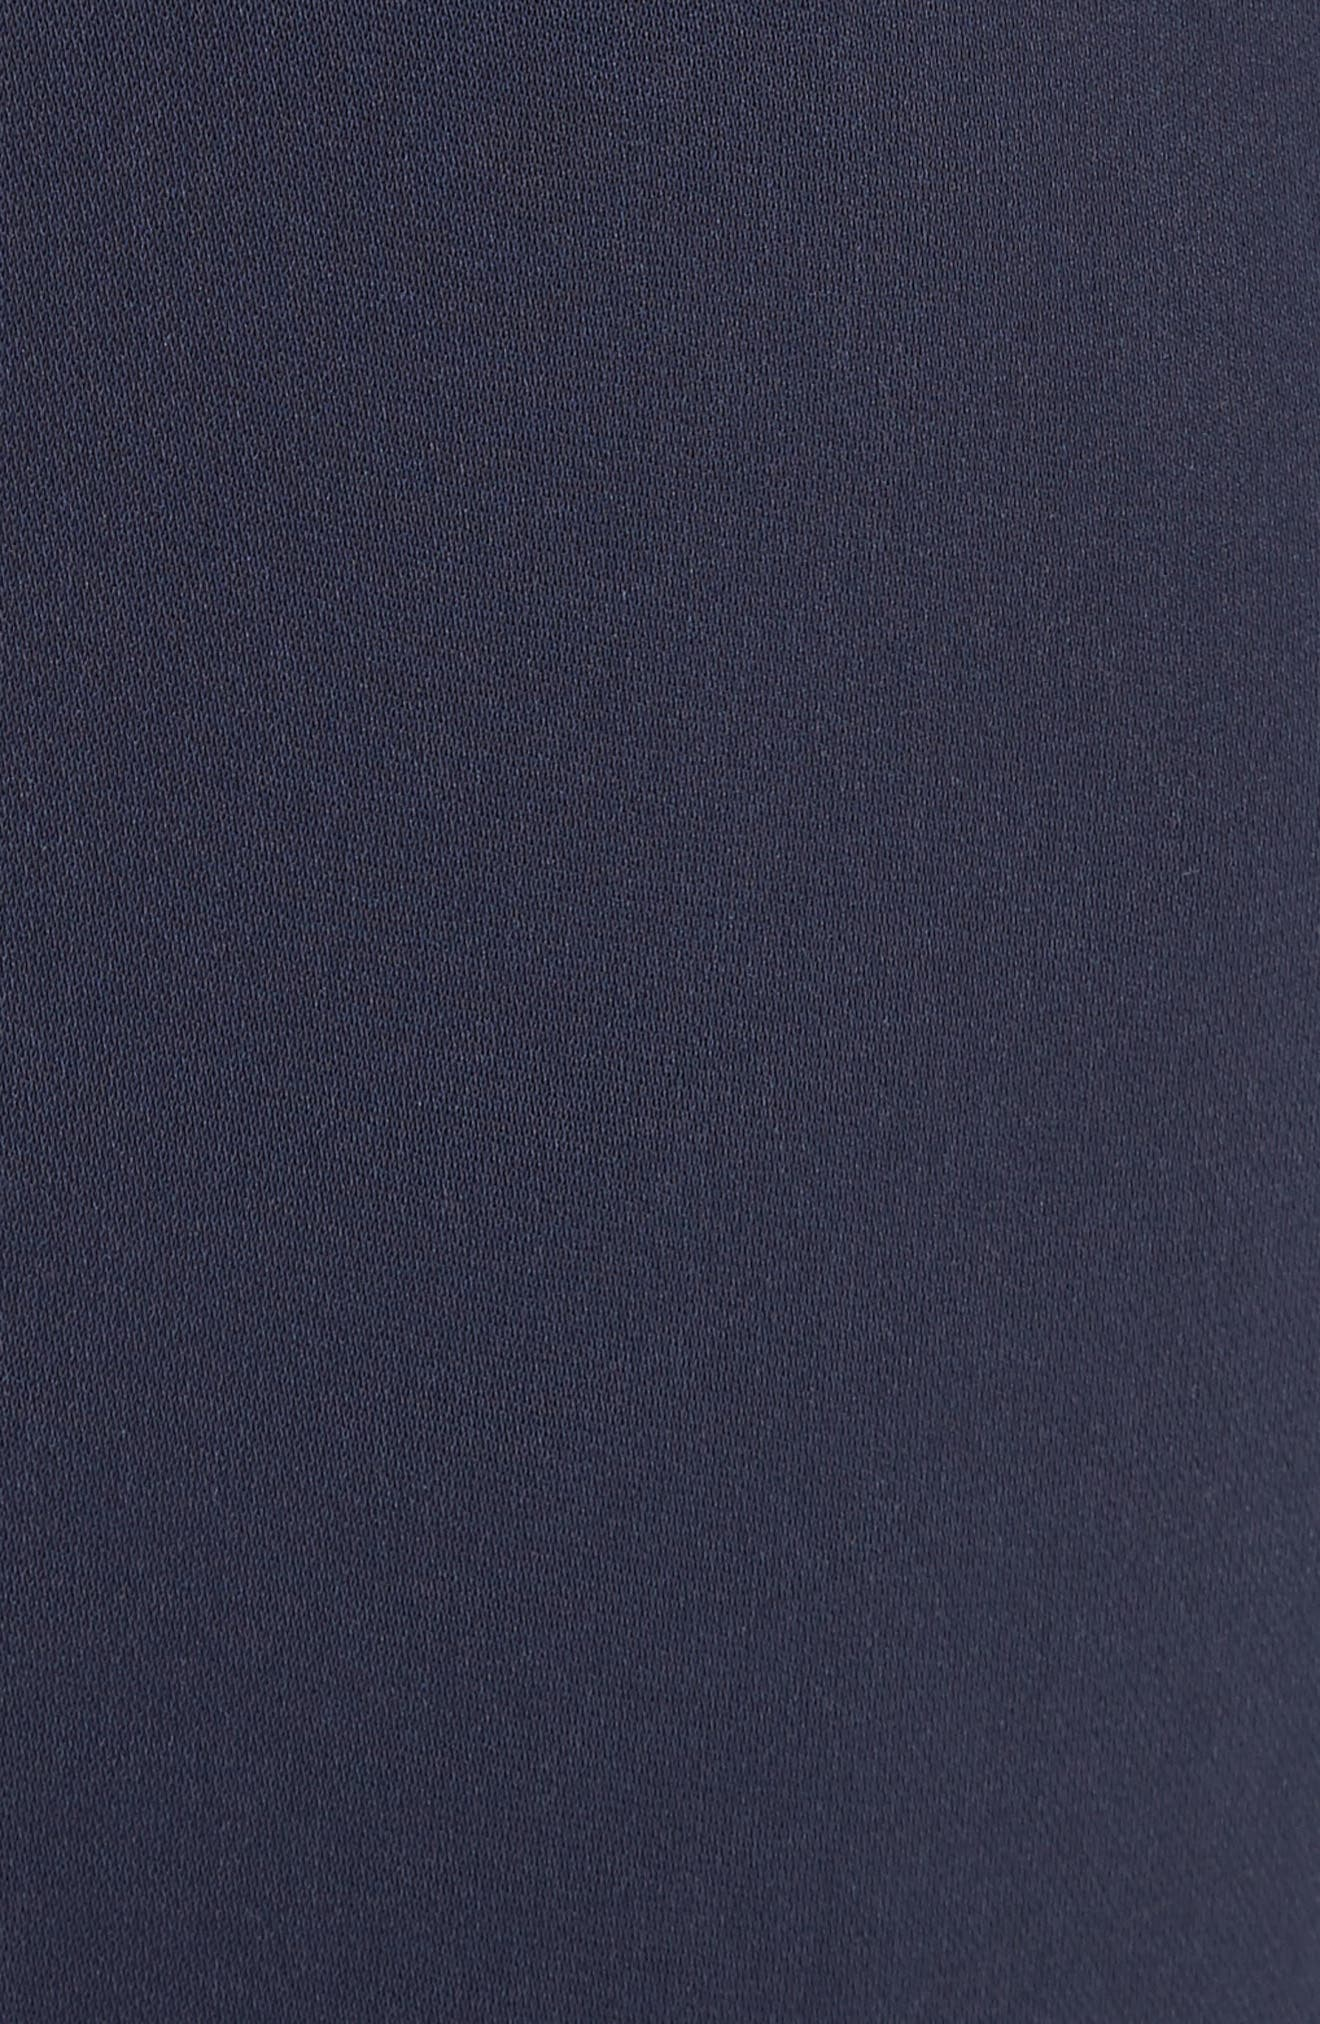 Diana Classic Cady Stretch Pants,                             Alternate thumbnail 5, color,                             NAVY